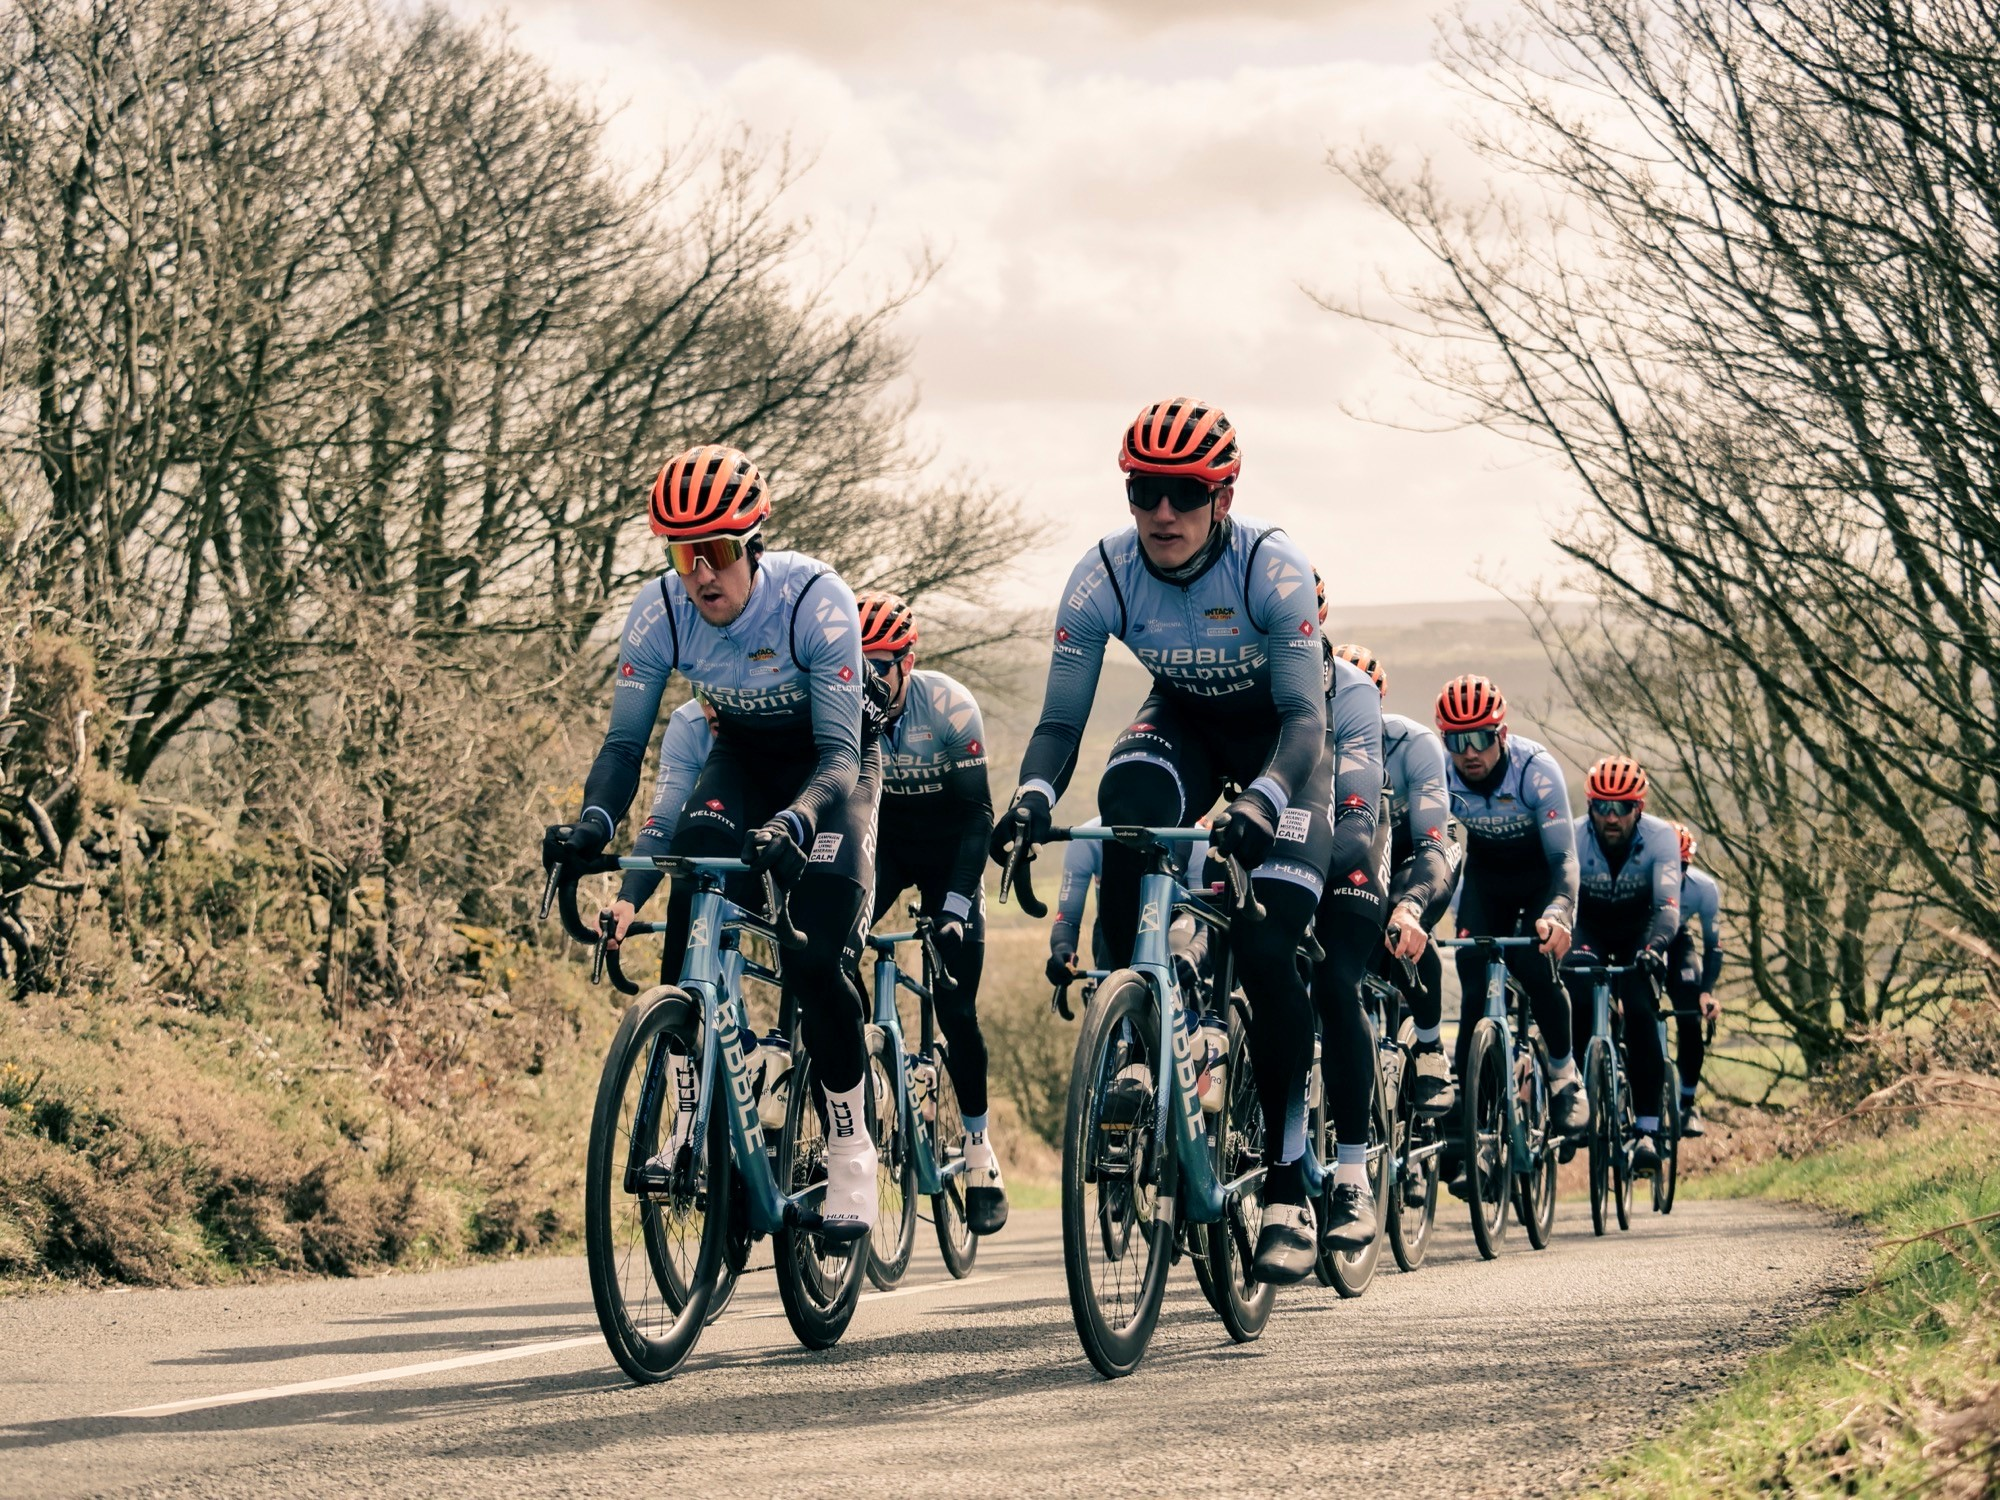 Photo of Freddie riding with his Ribble Weldtite teammates